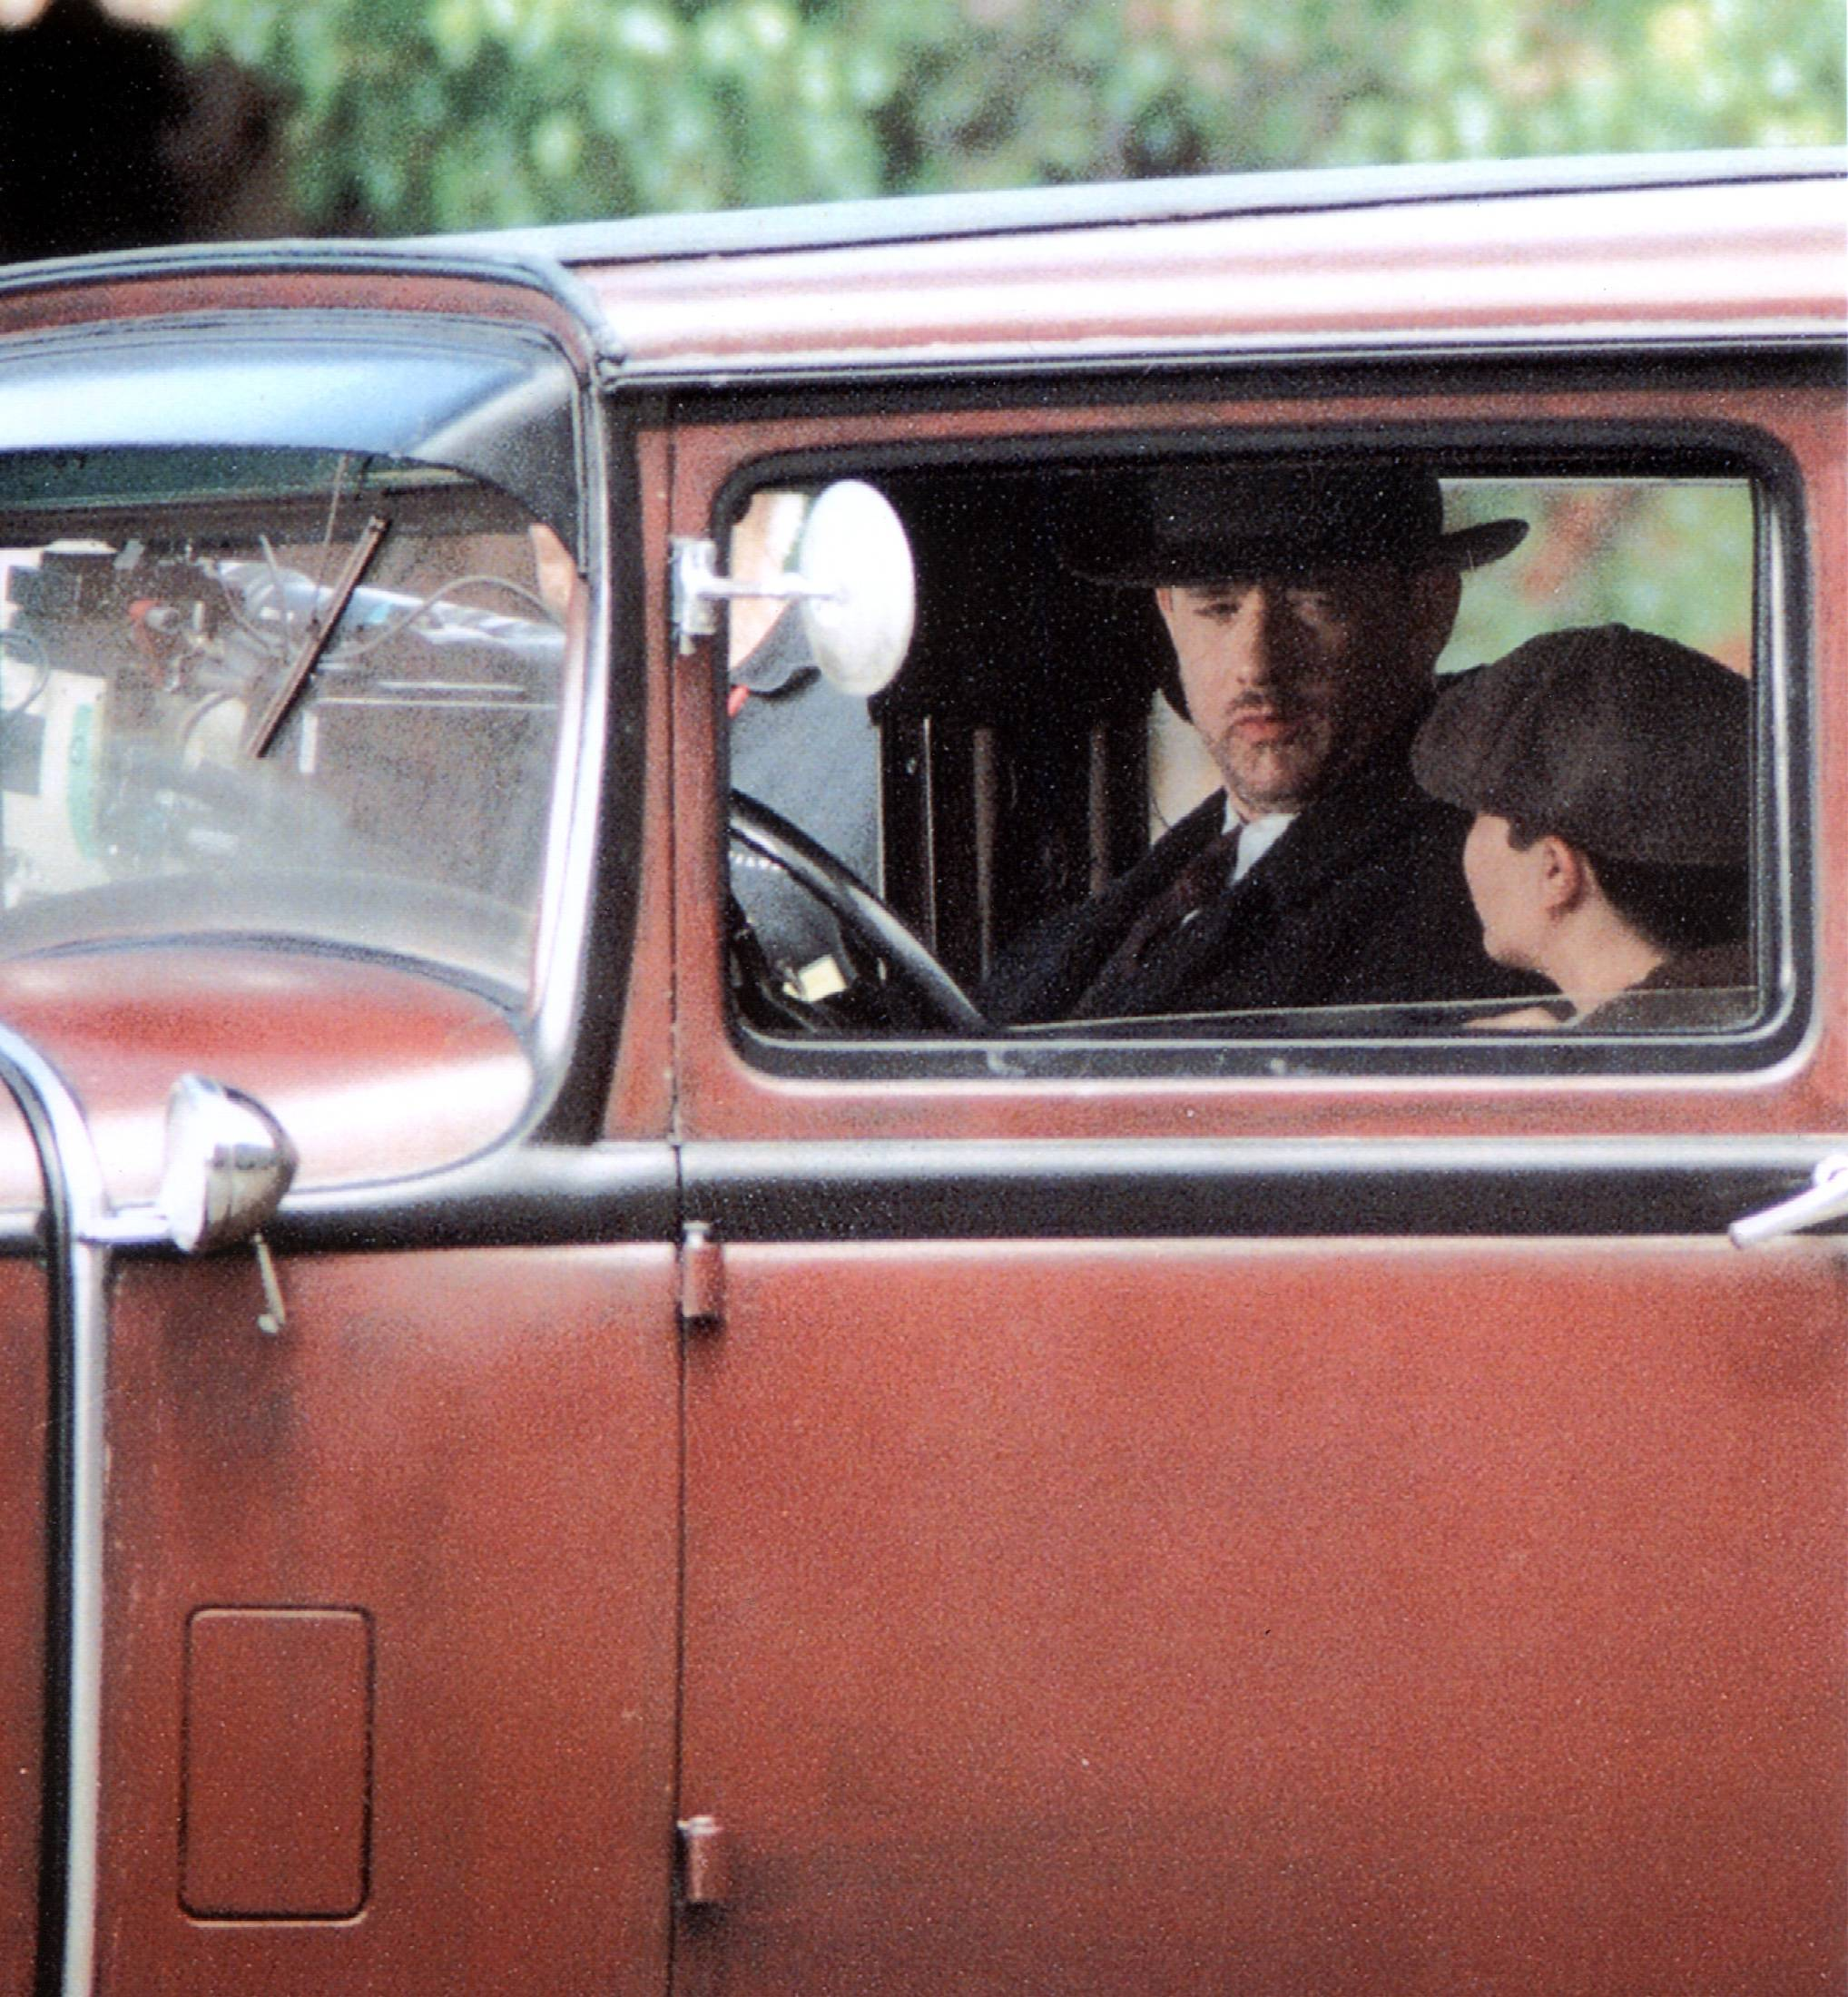 "COURTESY OF DAN ELLIOTTTom Hanks and Tyler Hoechlin film a scene on the set of the movie ""Road to Perdition"" in Geneva in 2001. The film was based on a graphic novel by Max Allan Collins."